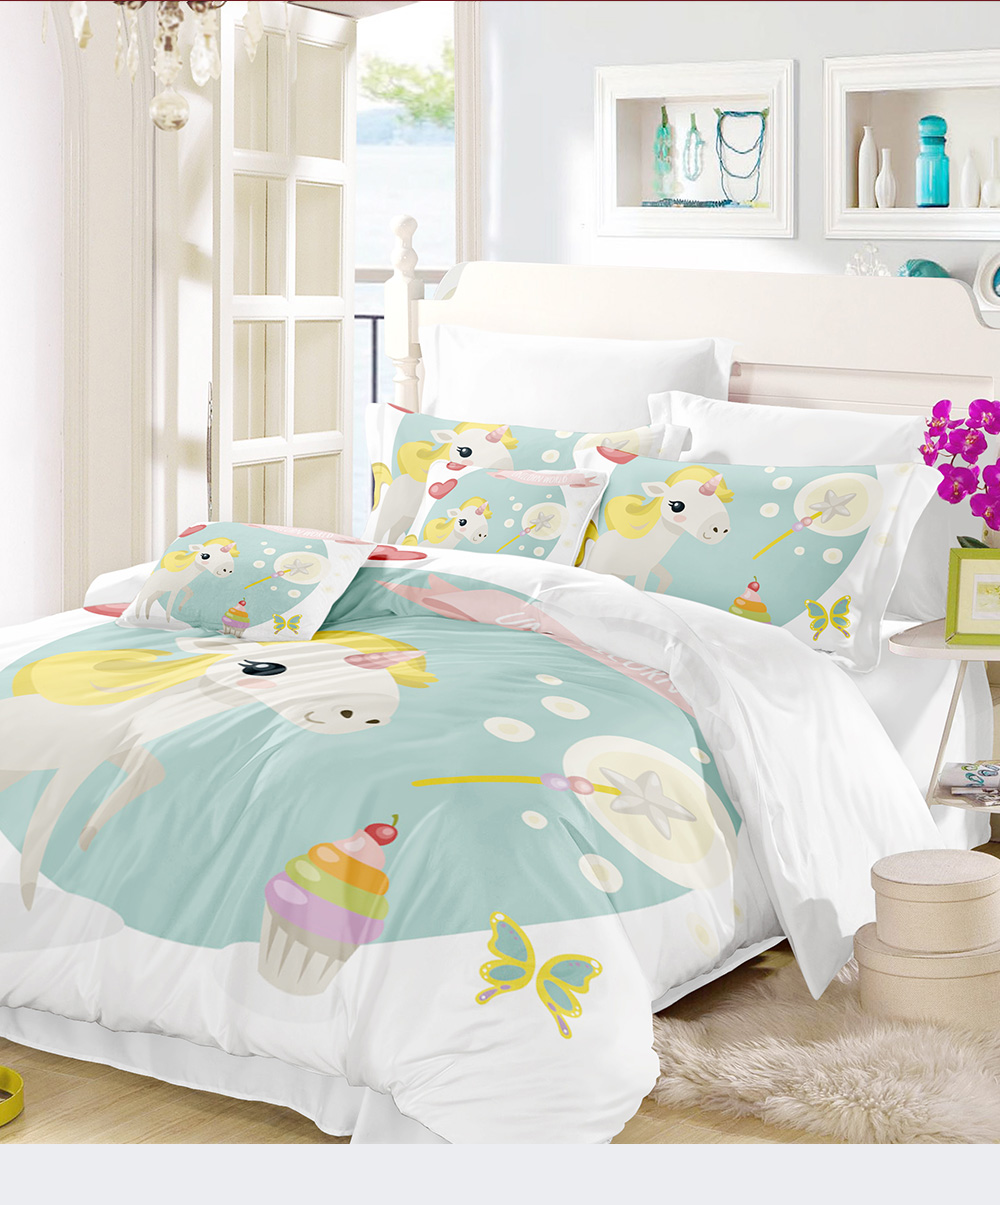 Other Bedding Zip It Friends Twin Bedding Set Twin Size Unicorn Rainbows Free Shipping Home Furniture Diy Tohoku Morinagamilk Co Jp